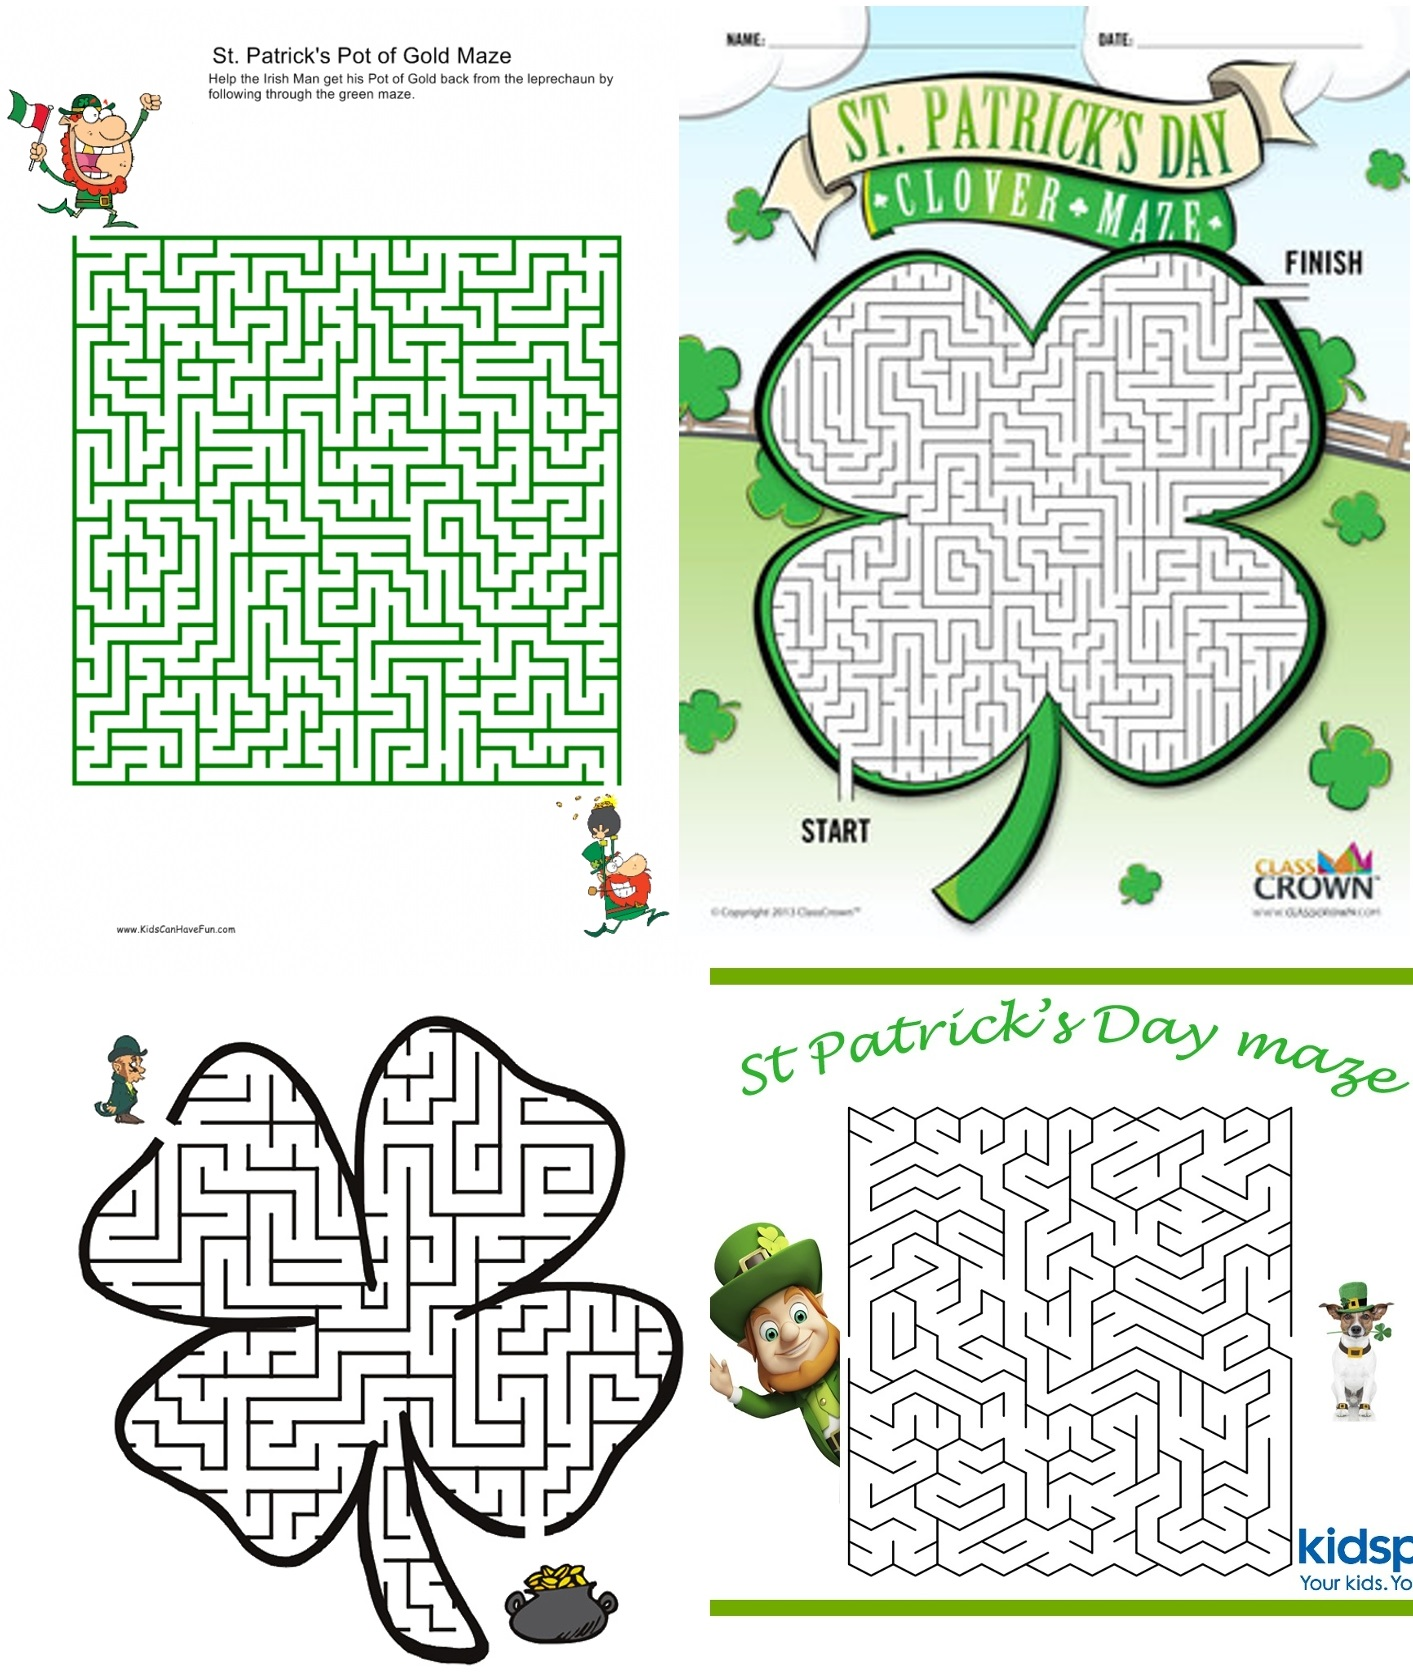 St. Patrick's Day Game Printable Maze Activity Worksheets for Kids